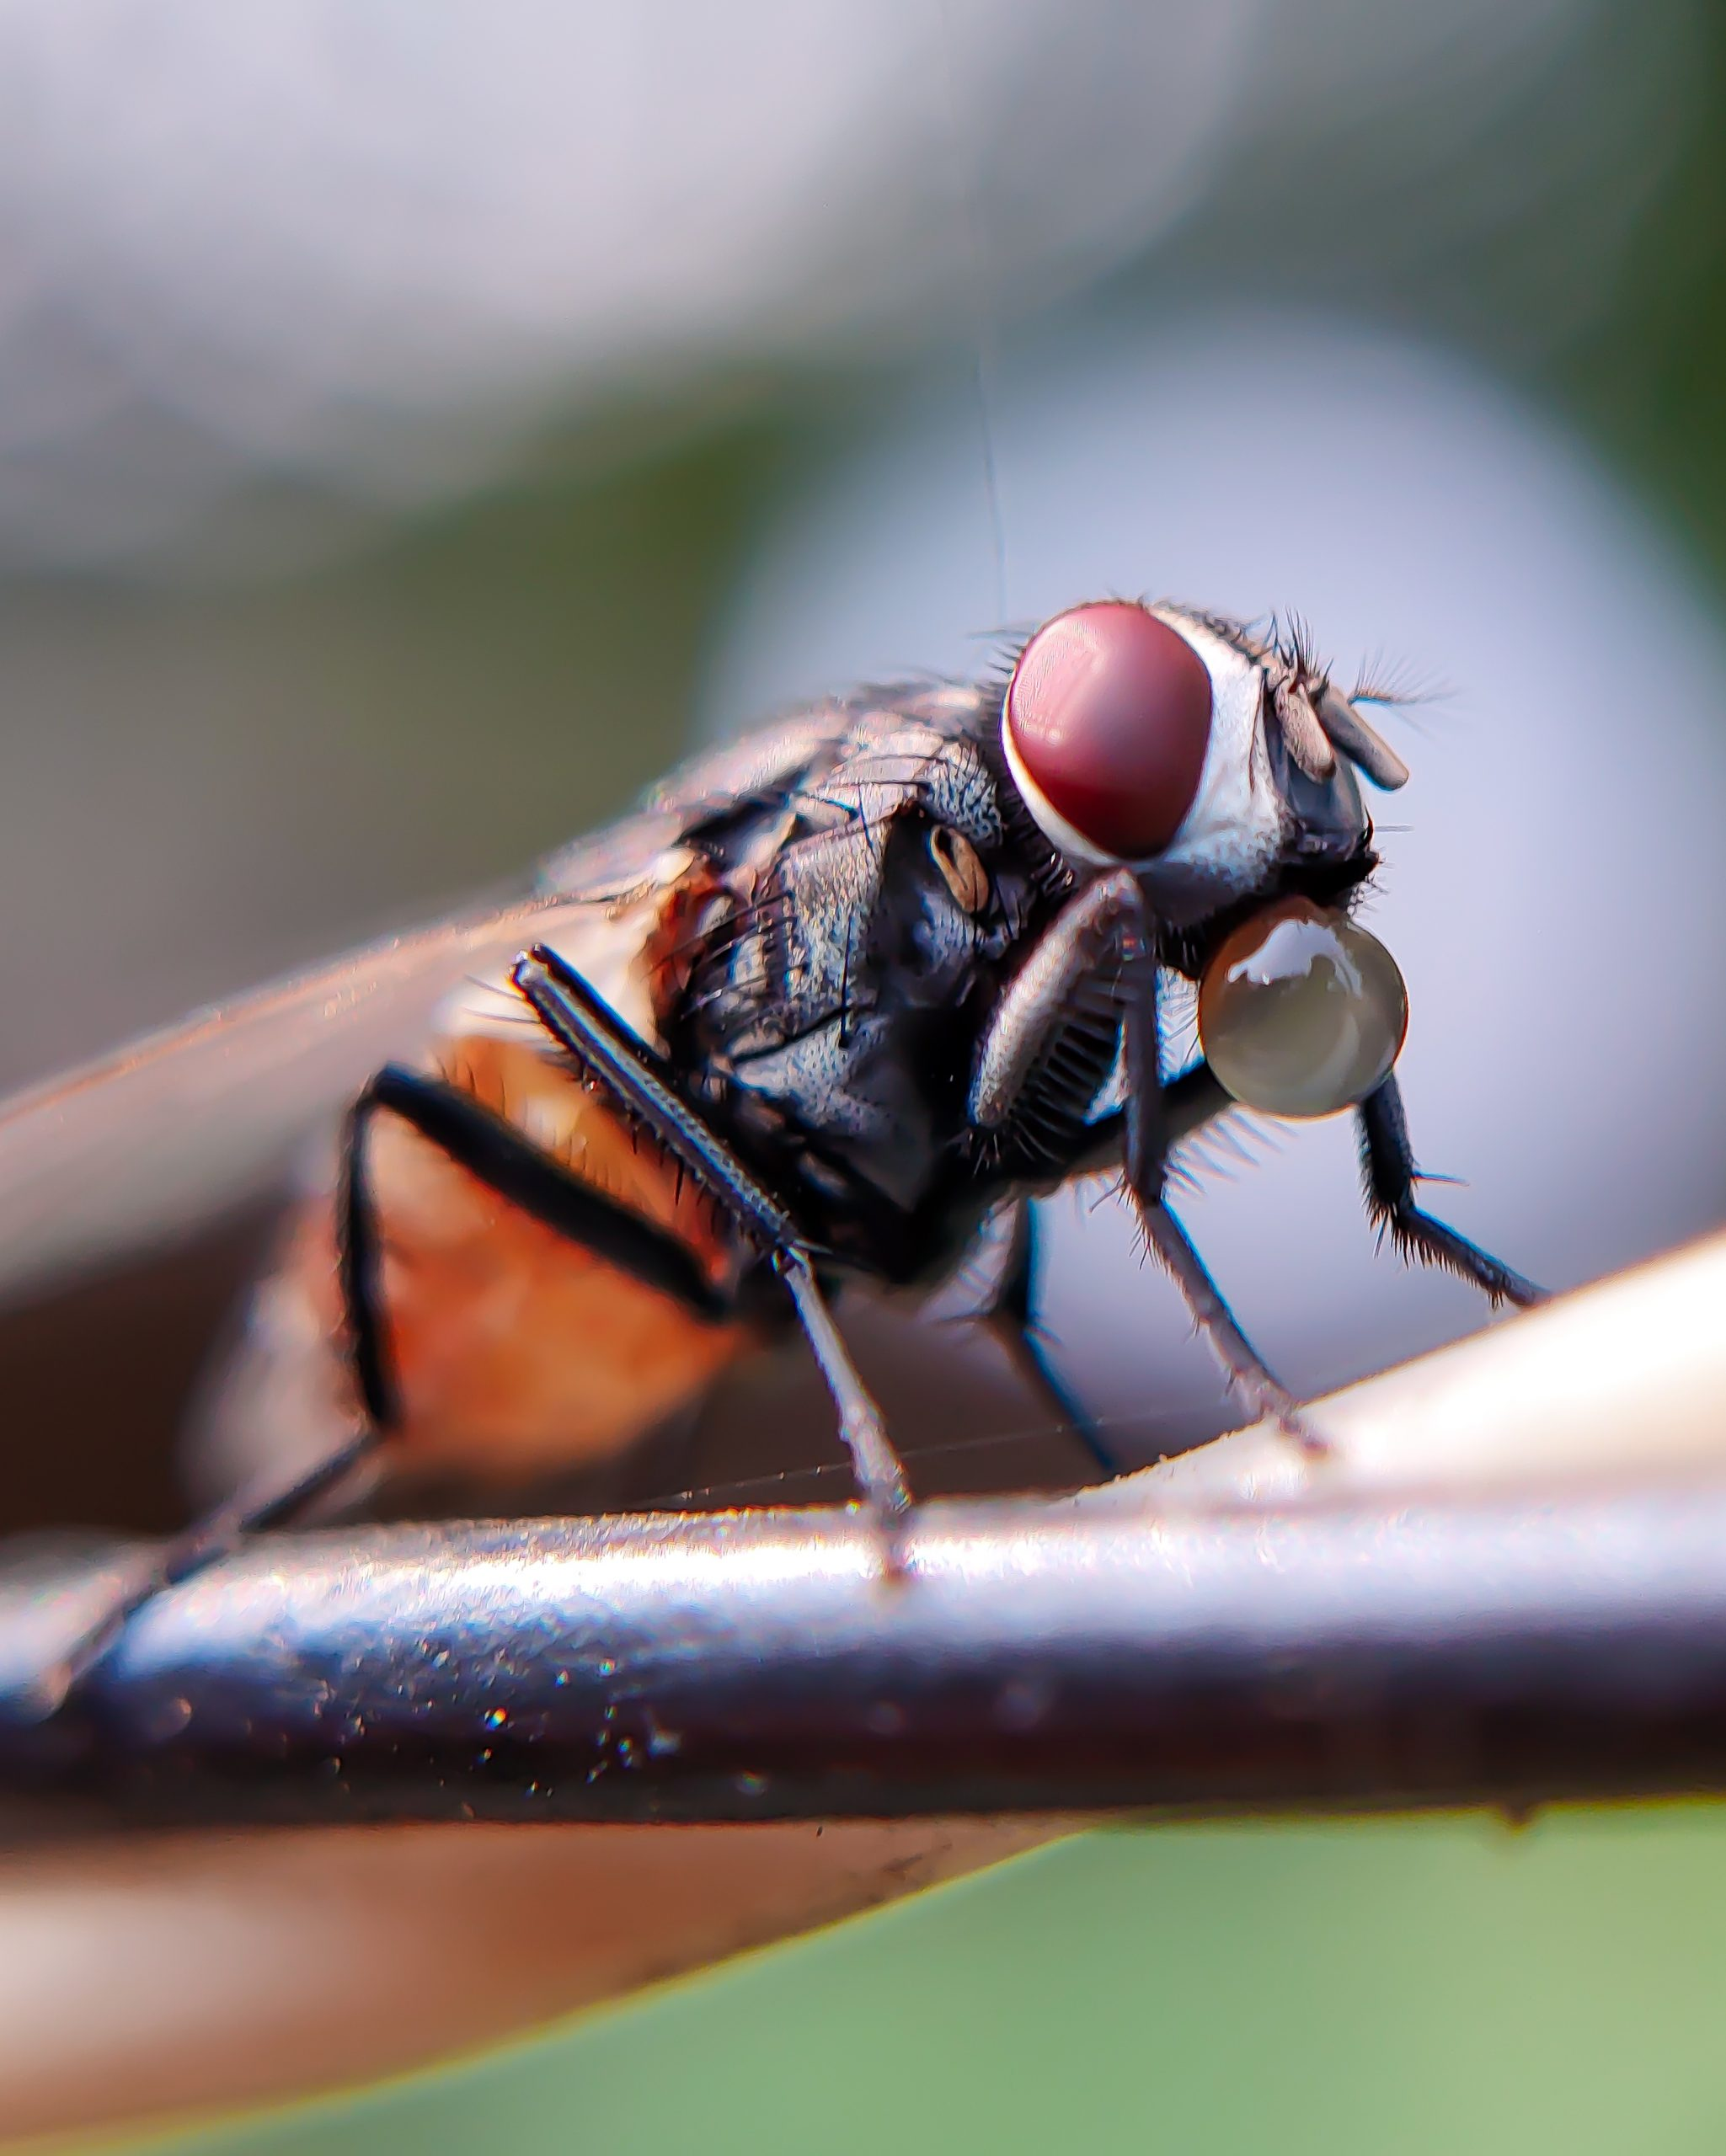 Close up shot of Housefly